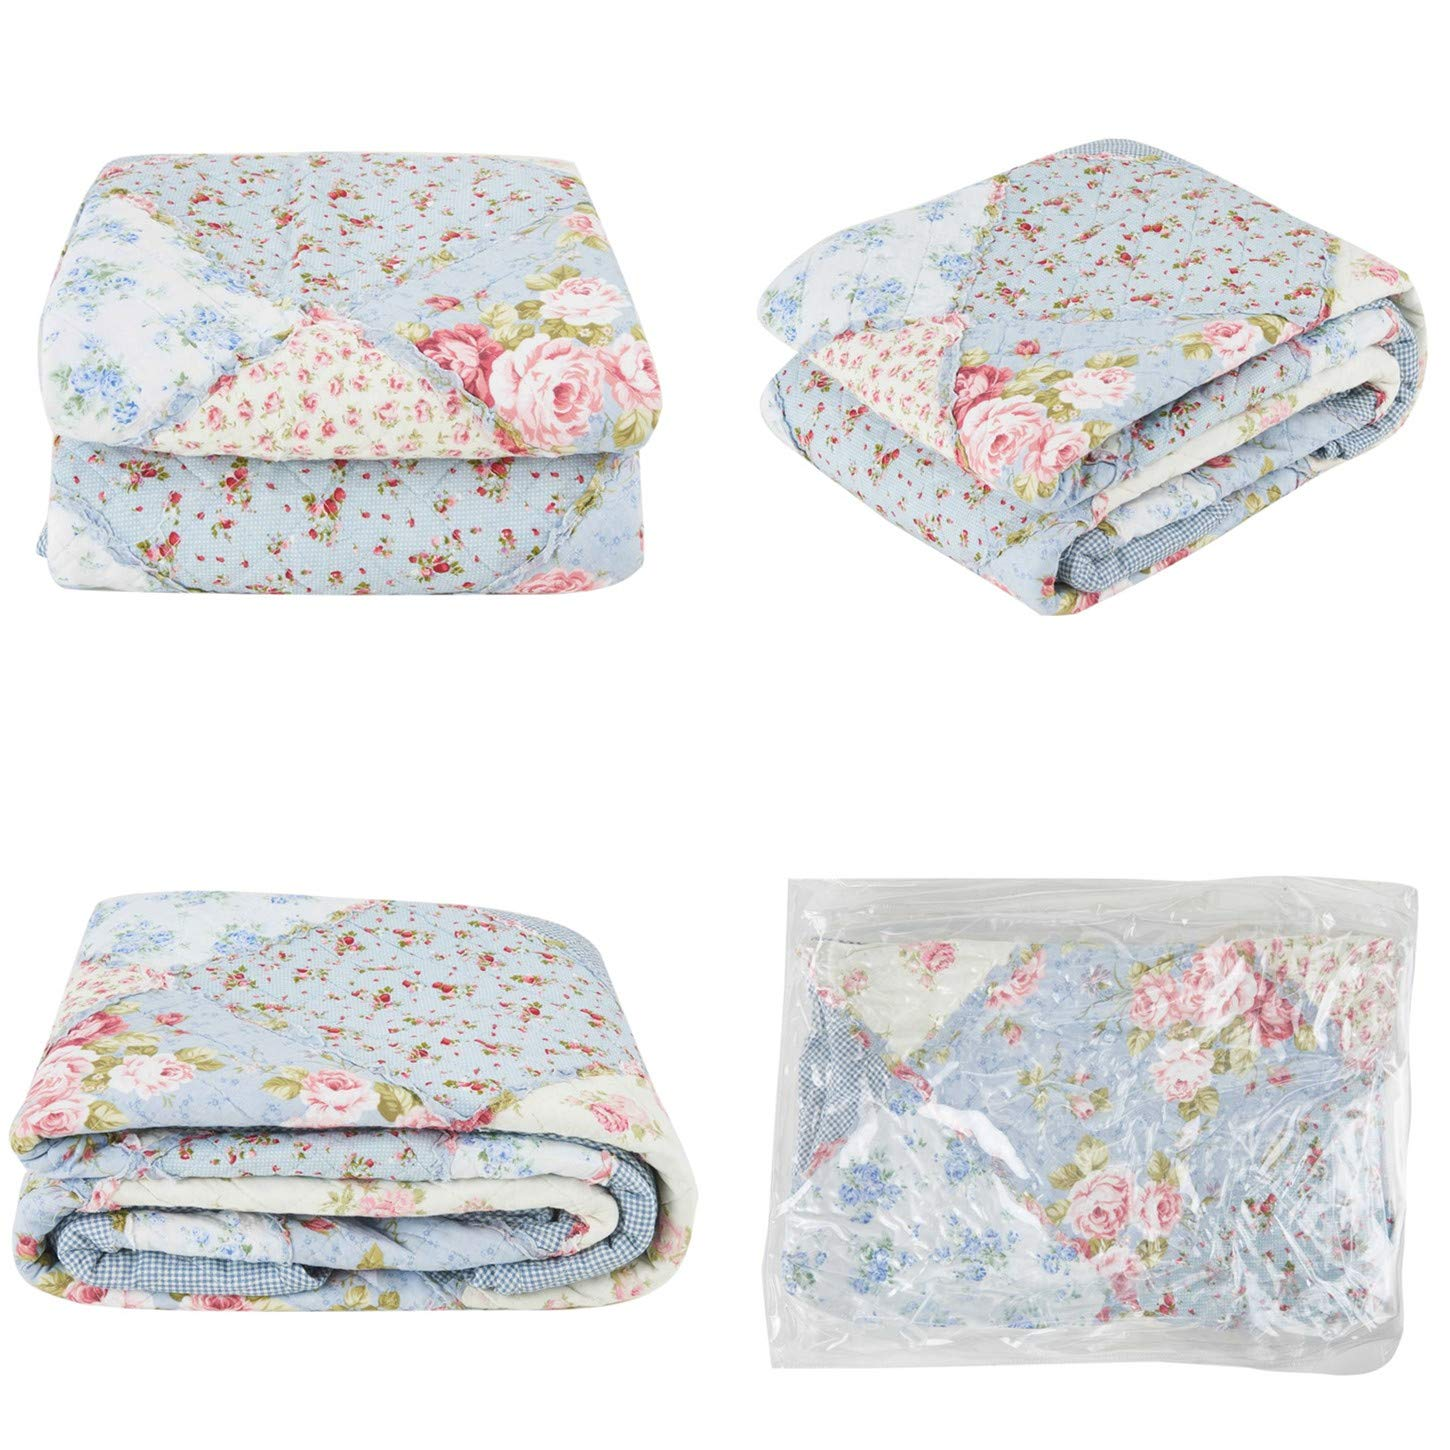 Unimall Patchwork Quilted Throws Blanket for Sofa Chair 150 x 200 cm Lightweight Soft Cotton Reversible Floral Printed Blue Quilted Bedspread Single Bed Cover for Living Room Bedrooms